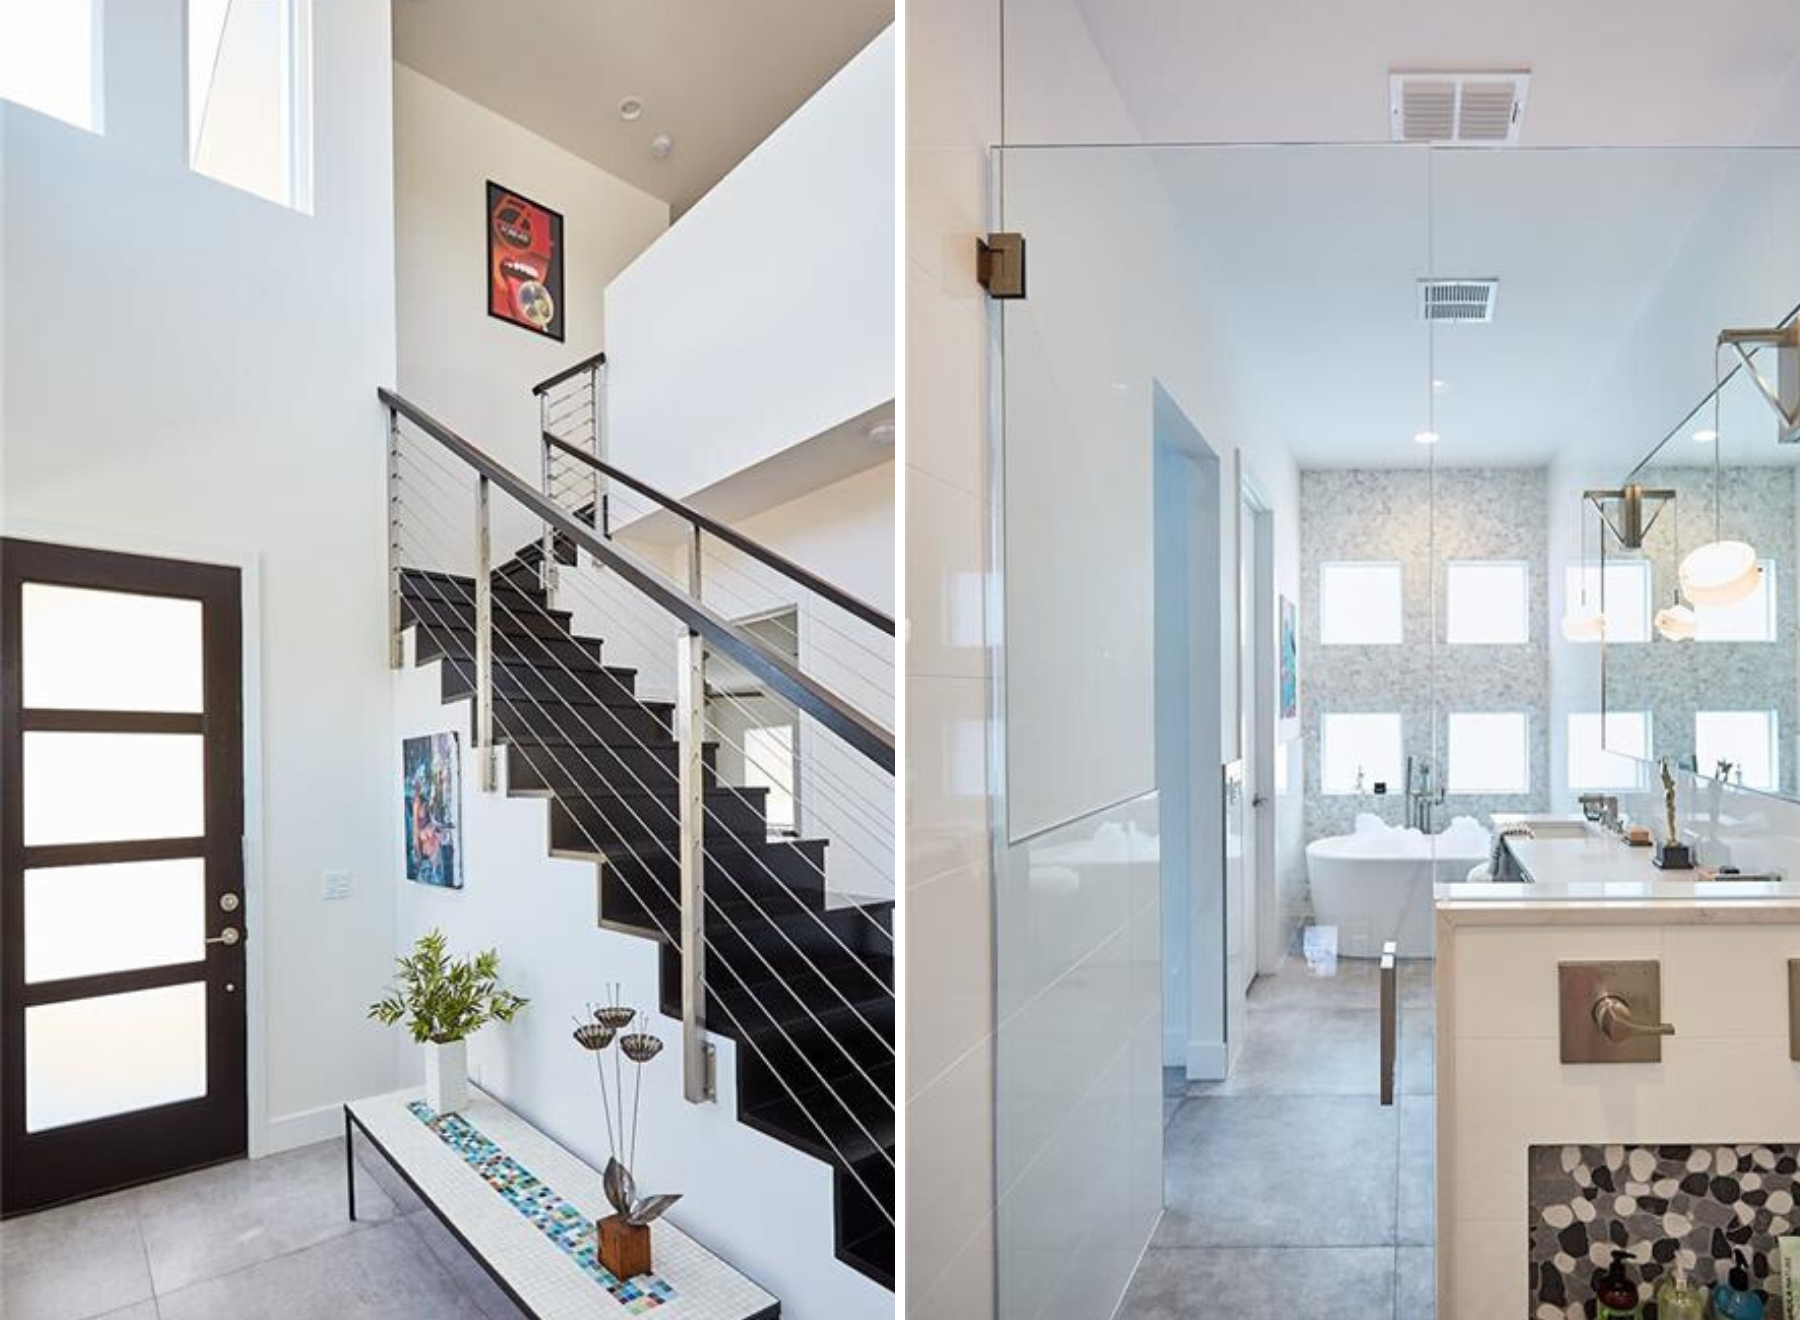 And the white foyer features a black stairway with metal railings in the left pic. Also windows fill the space above the entrance door. But the right side picture shows a master bath with 4 square windows. Also the bathroom is dominated by white tiled walls.